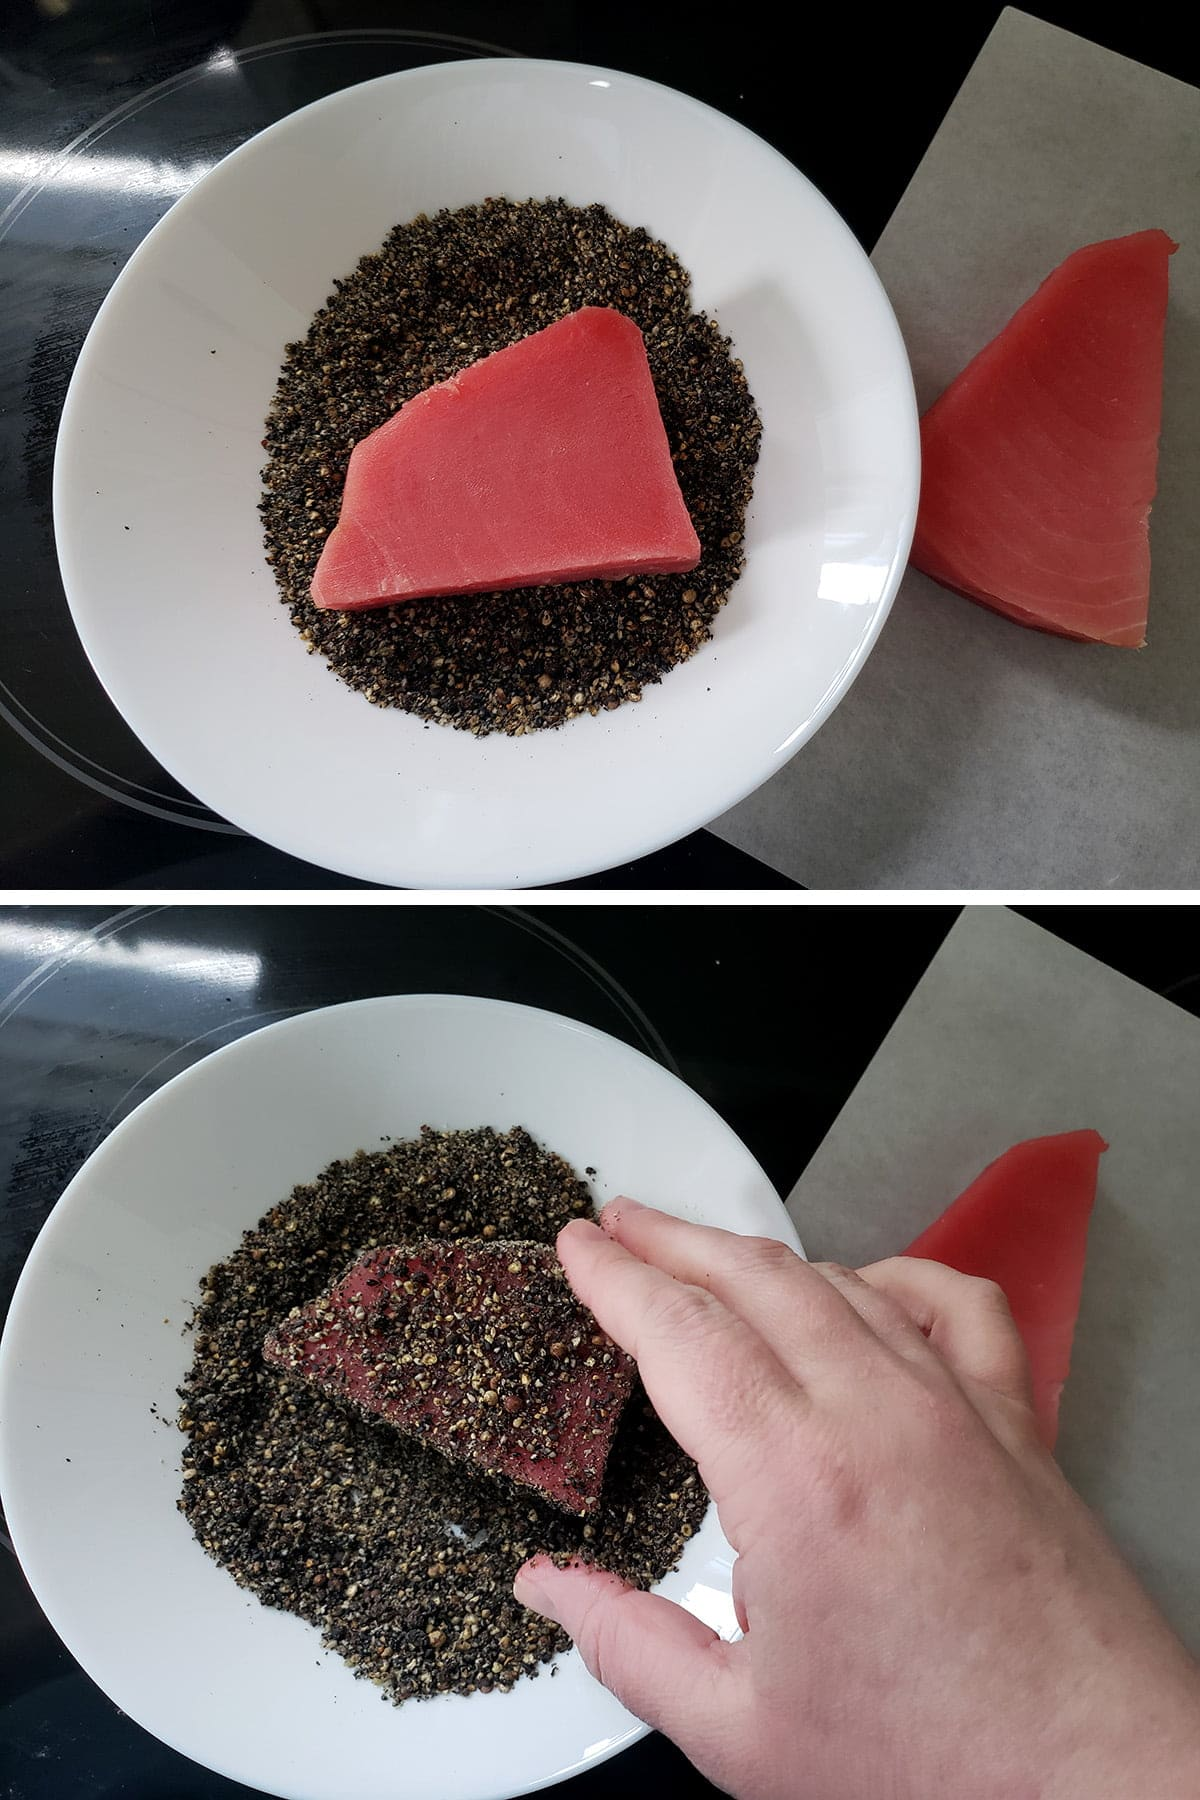 A two part compilation image showing a piece of tuna being coated in the pepper and sesame seed rub.